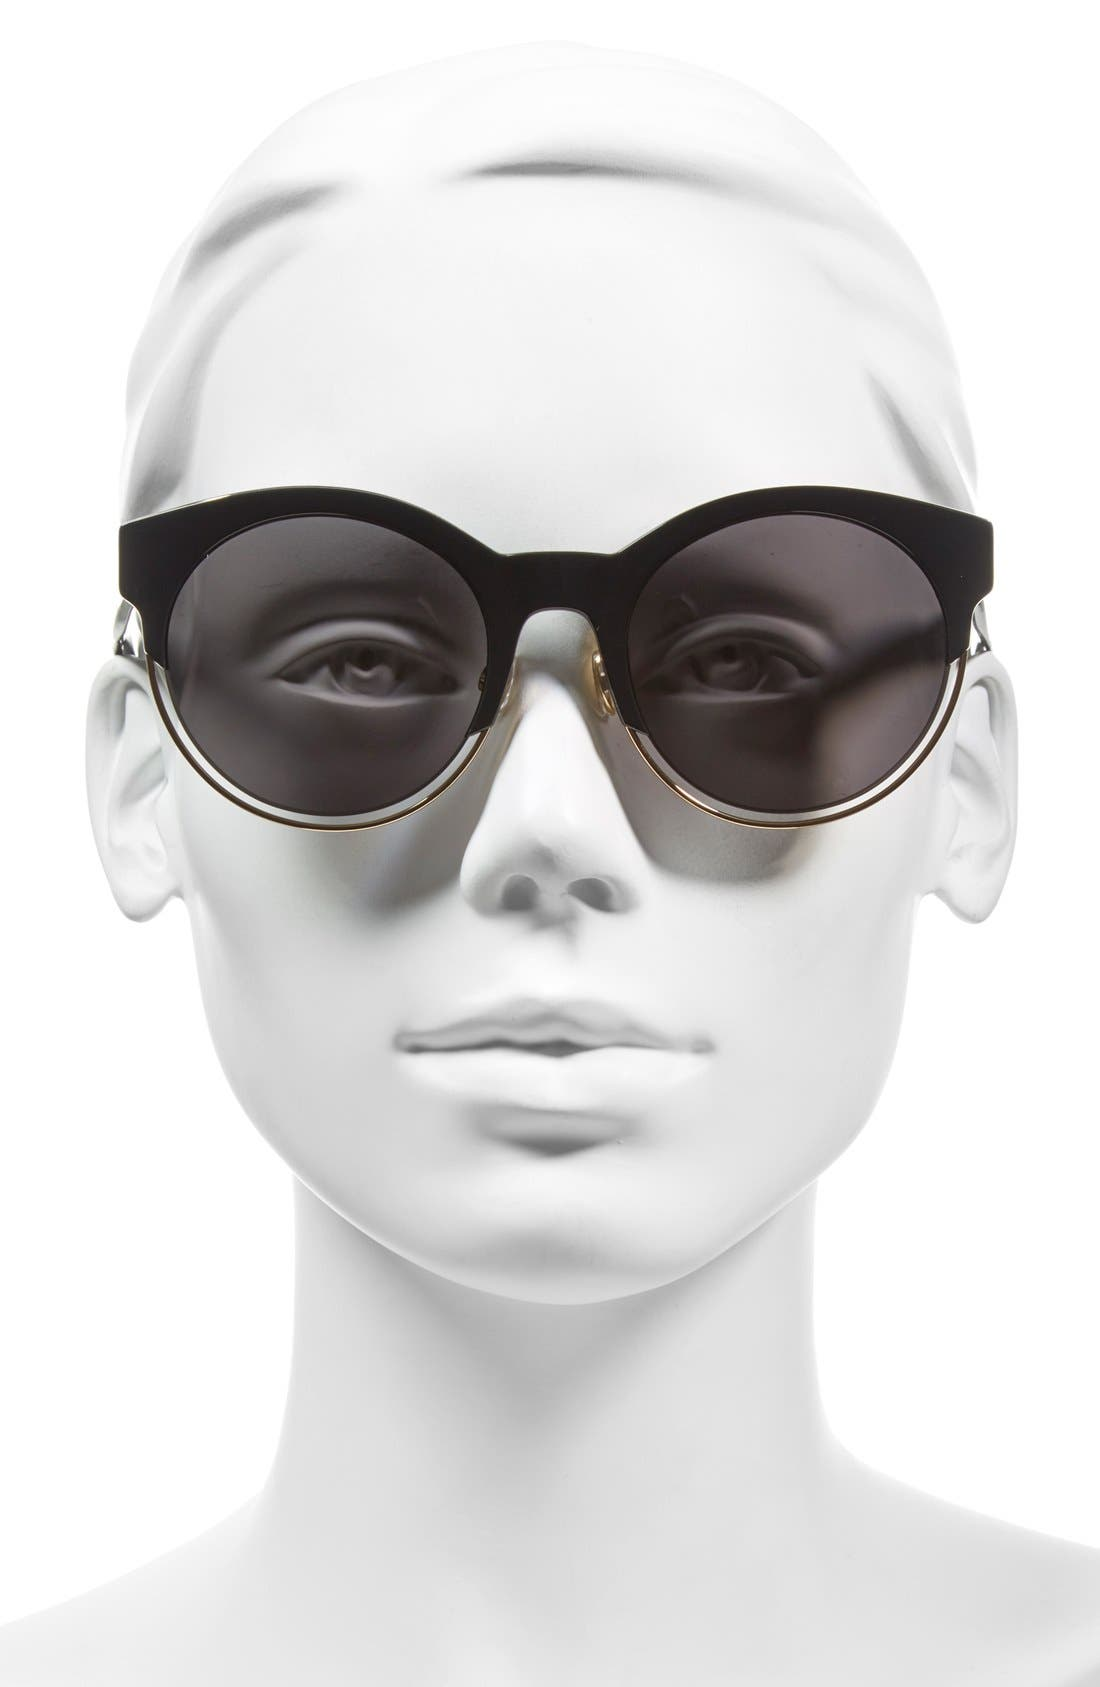 Siderall 1 53mm Round Sunglasses,                             Alternate thumbnail 10, color,